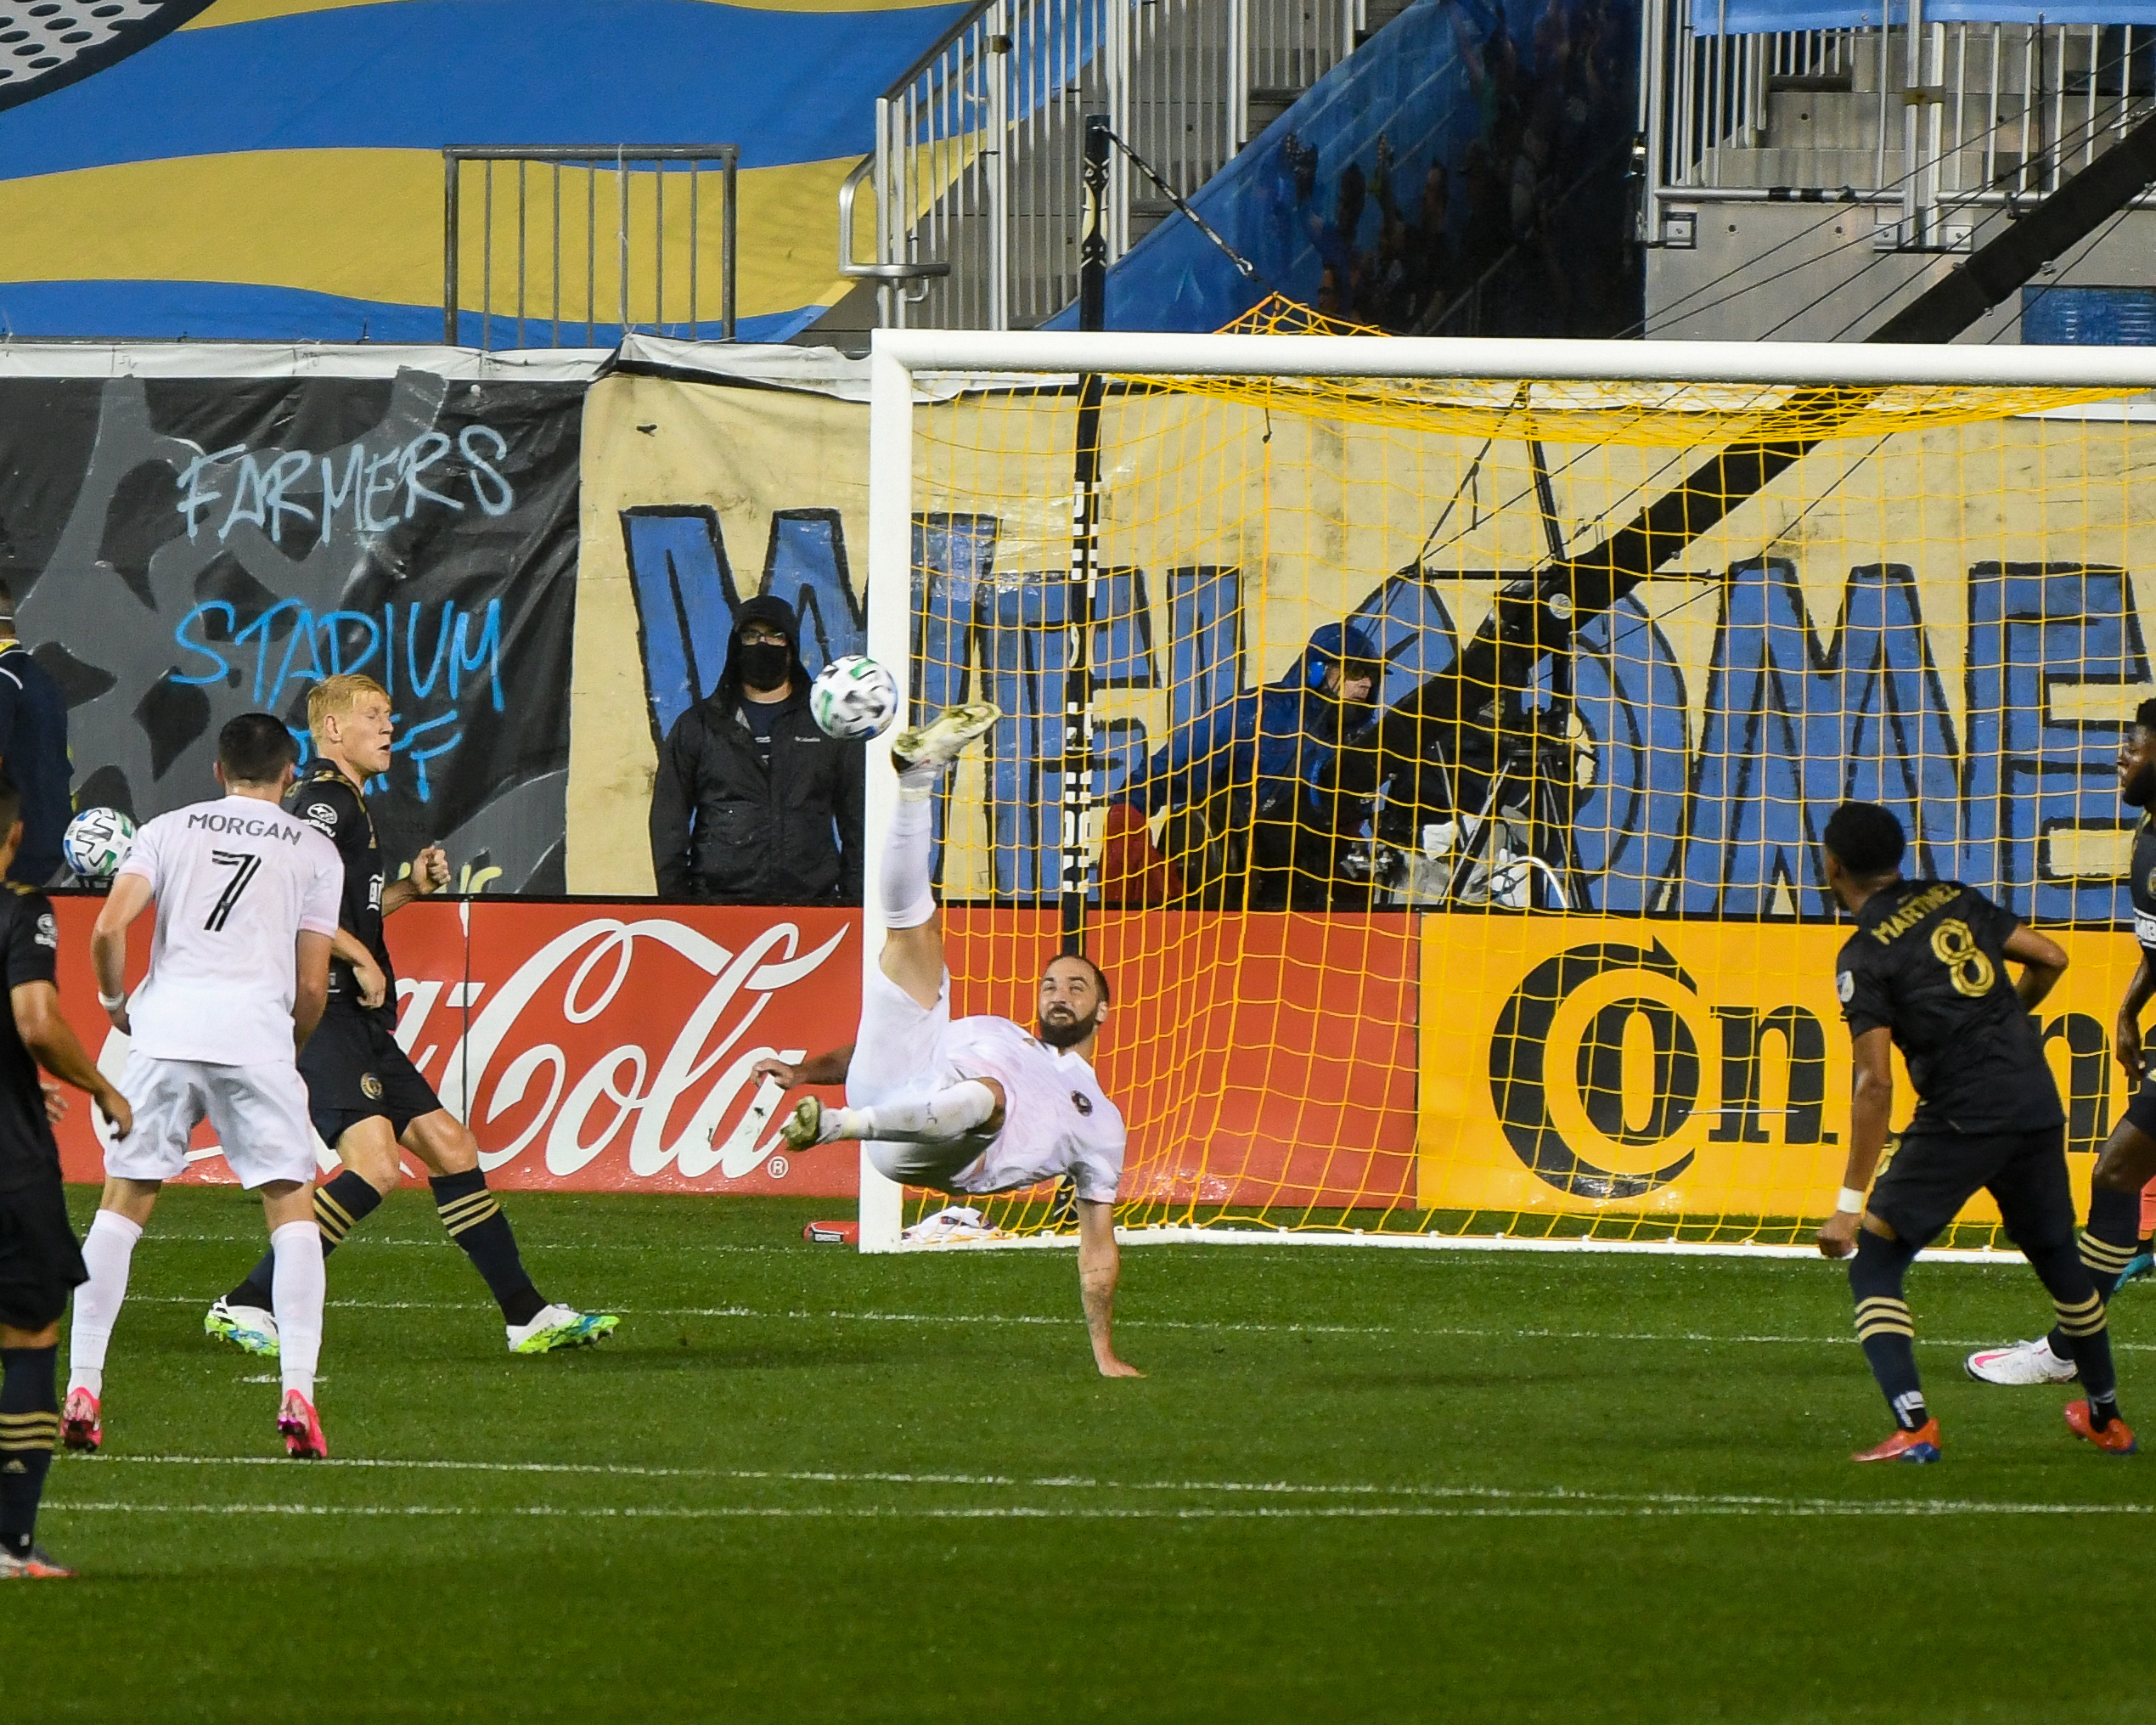 In his MLS debut, Gonzalo Higuaín goes for the bicycle kick but hits the post.